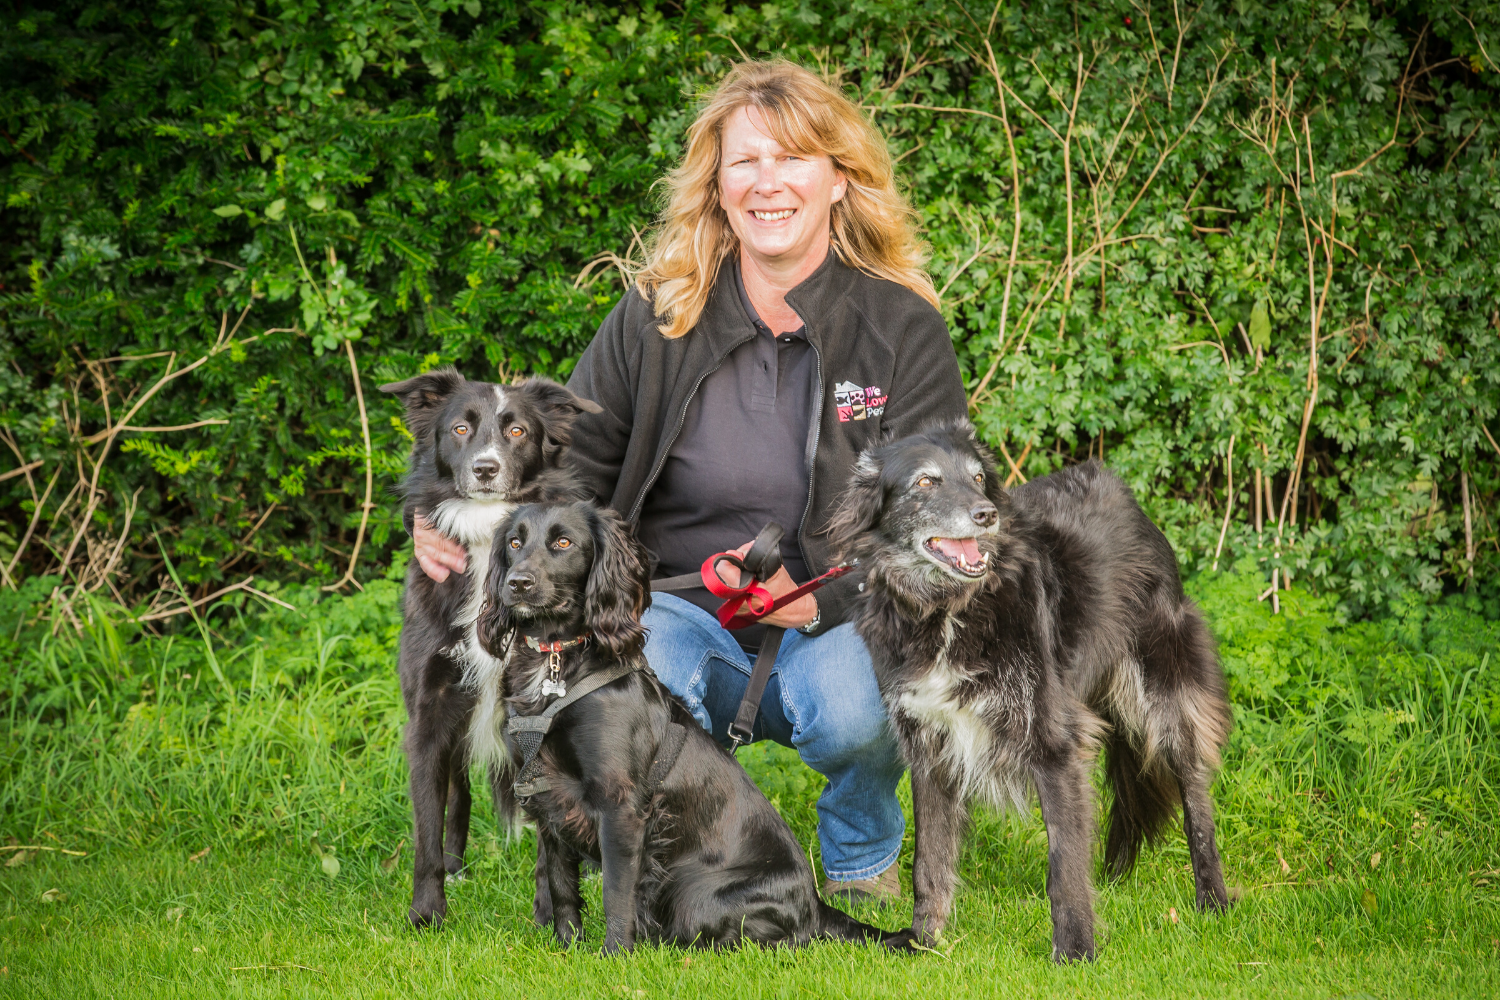 Dog walker and pet sitter for Salisbury. We look after your pets as if they were our own.